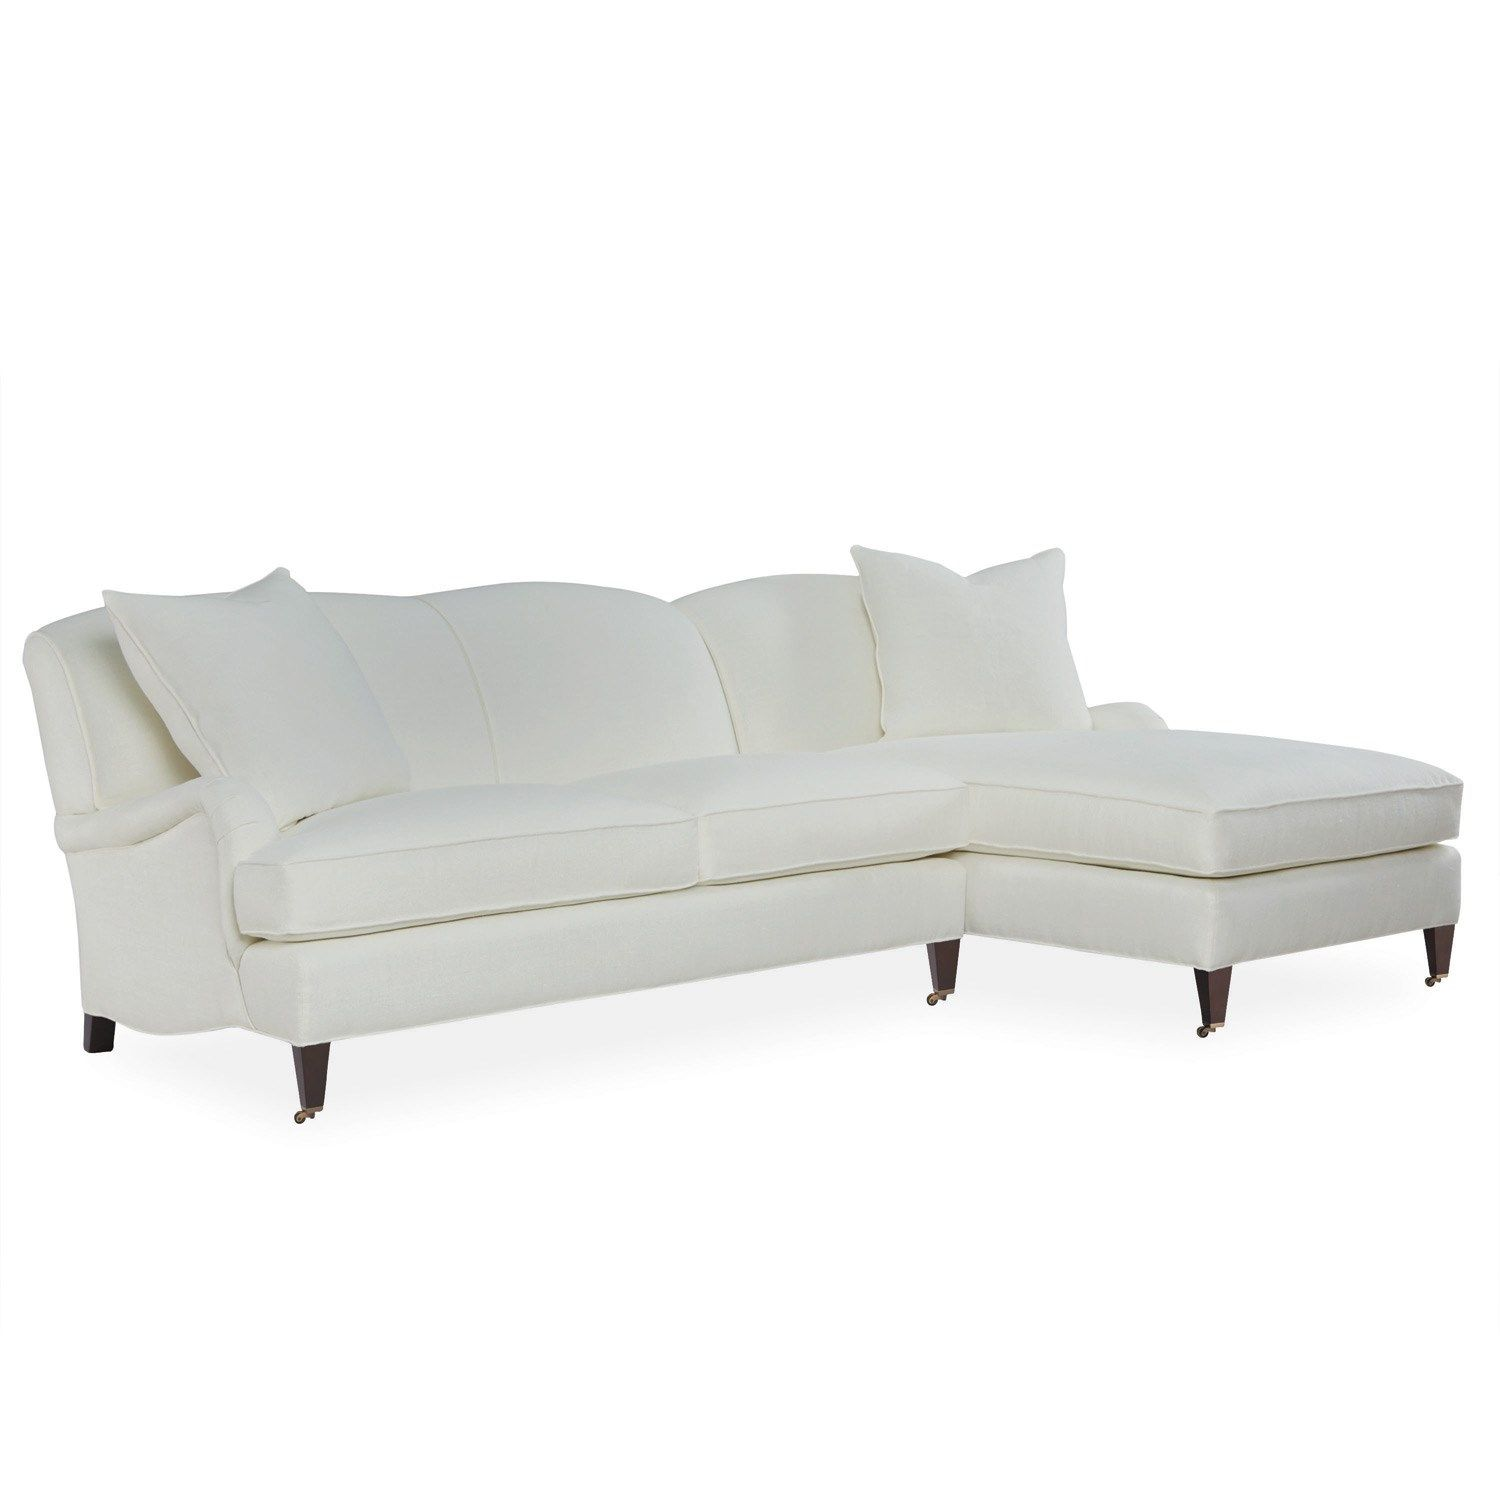 Layla Grayce makes a sectional of the classic George Smith style English roll arm sofa  sc 1 st  Pinterest : english roll arm sectional sofa - Sectionals, Sofas & Couches